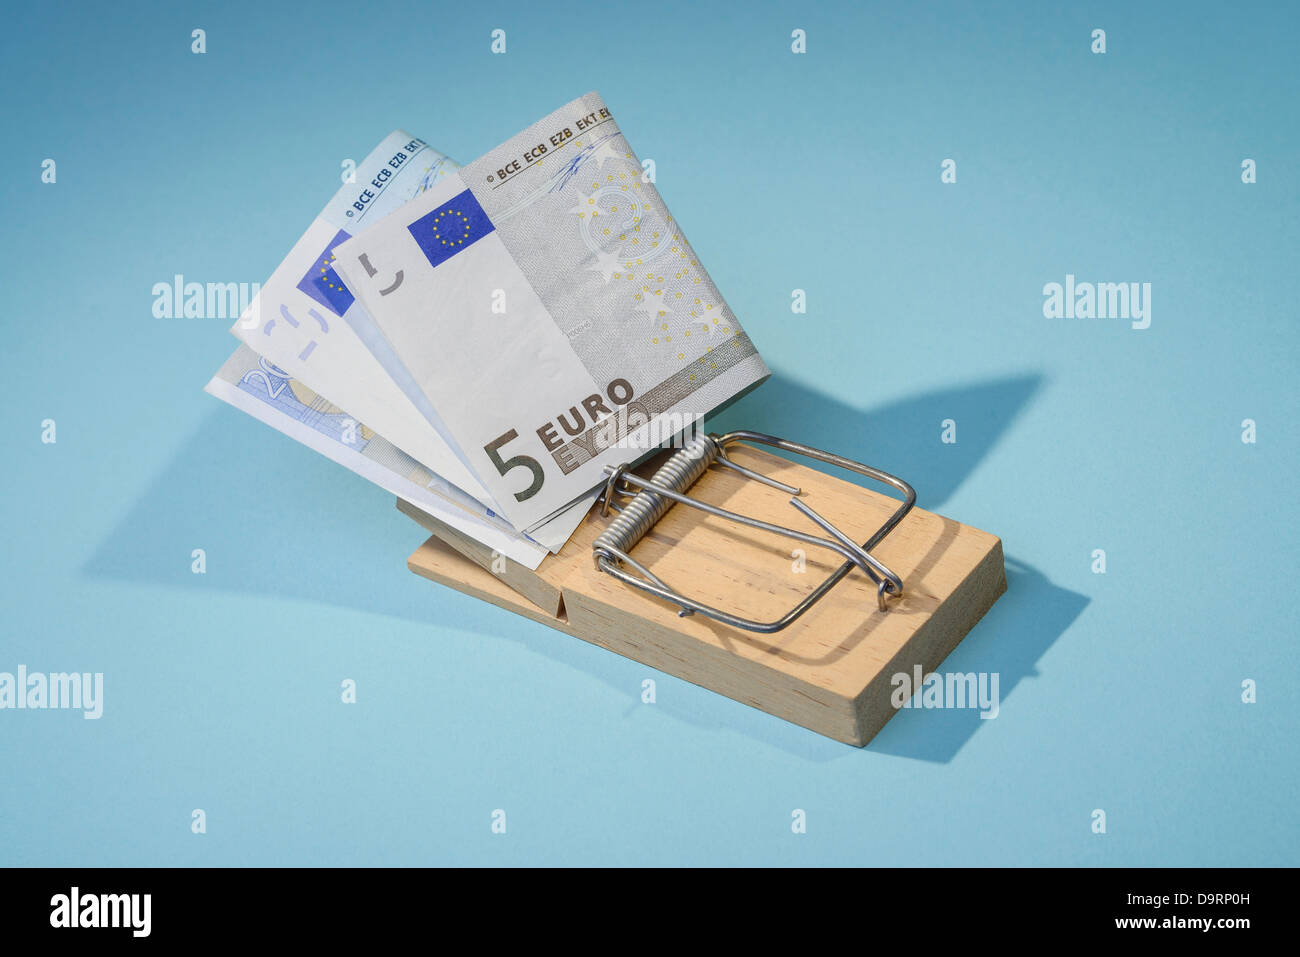 Euro notes in a mousetrap - Stock Image